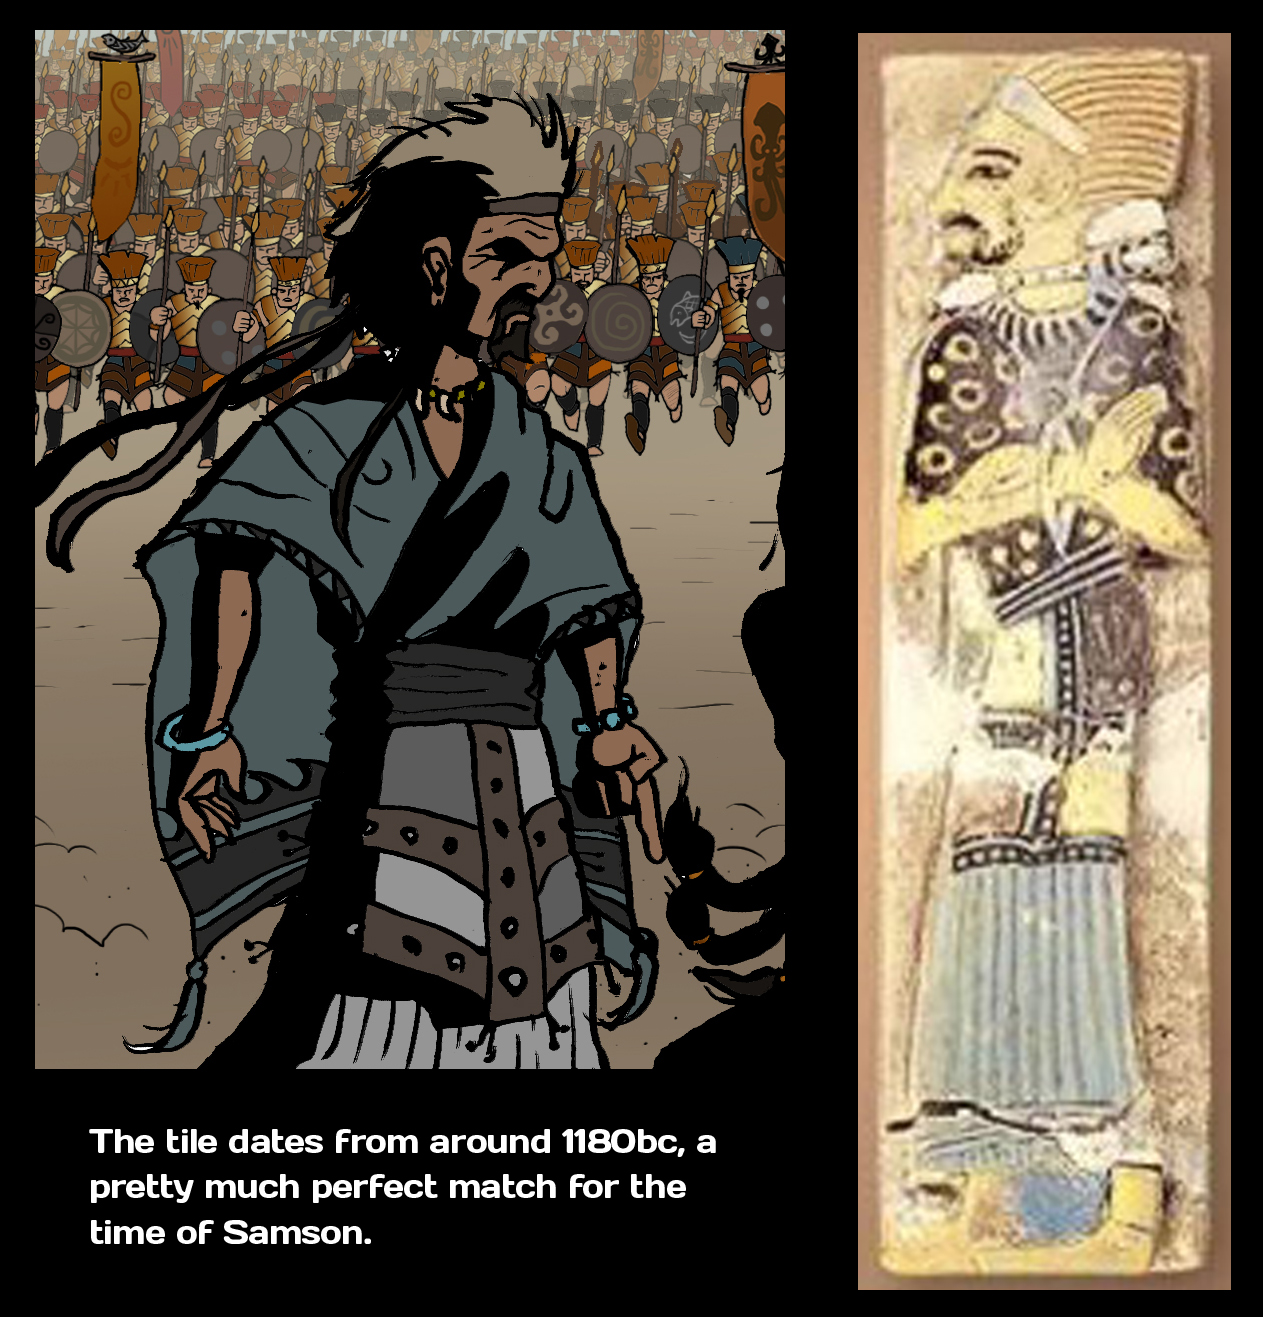 Comparing my picture of leader of Judah and an Egyptian tile of the day.